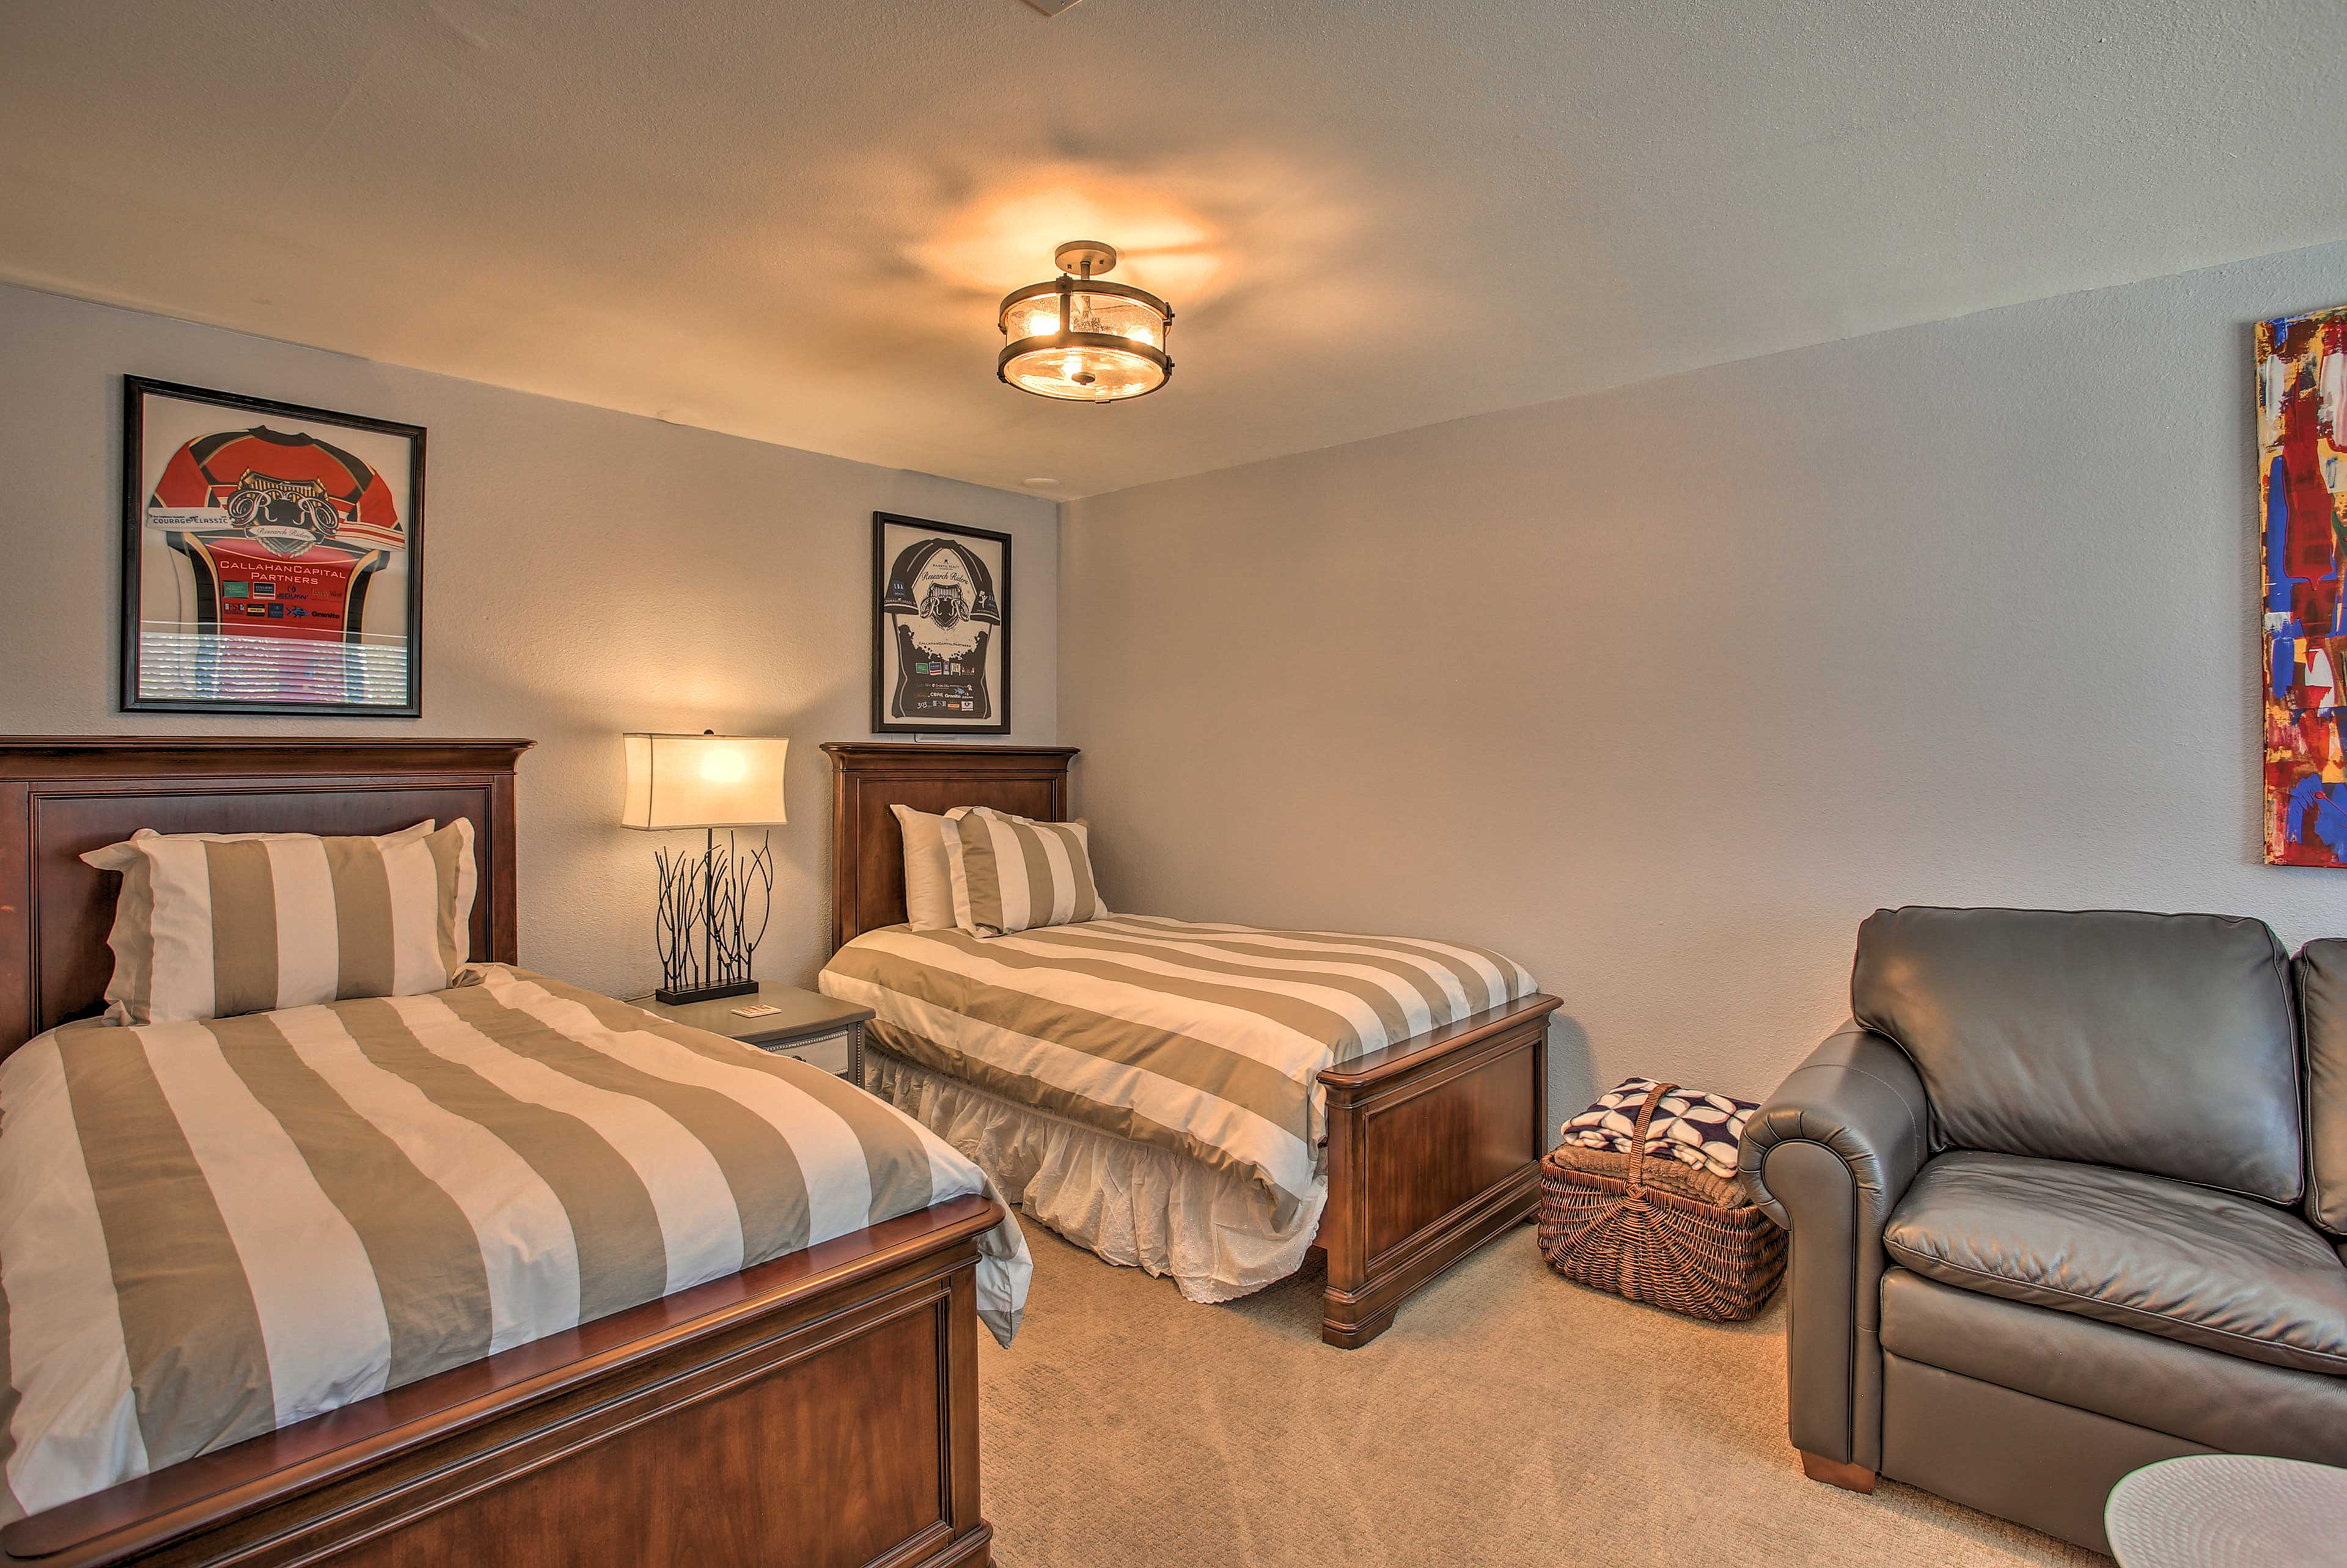 This room has been newly remodeled!